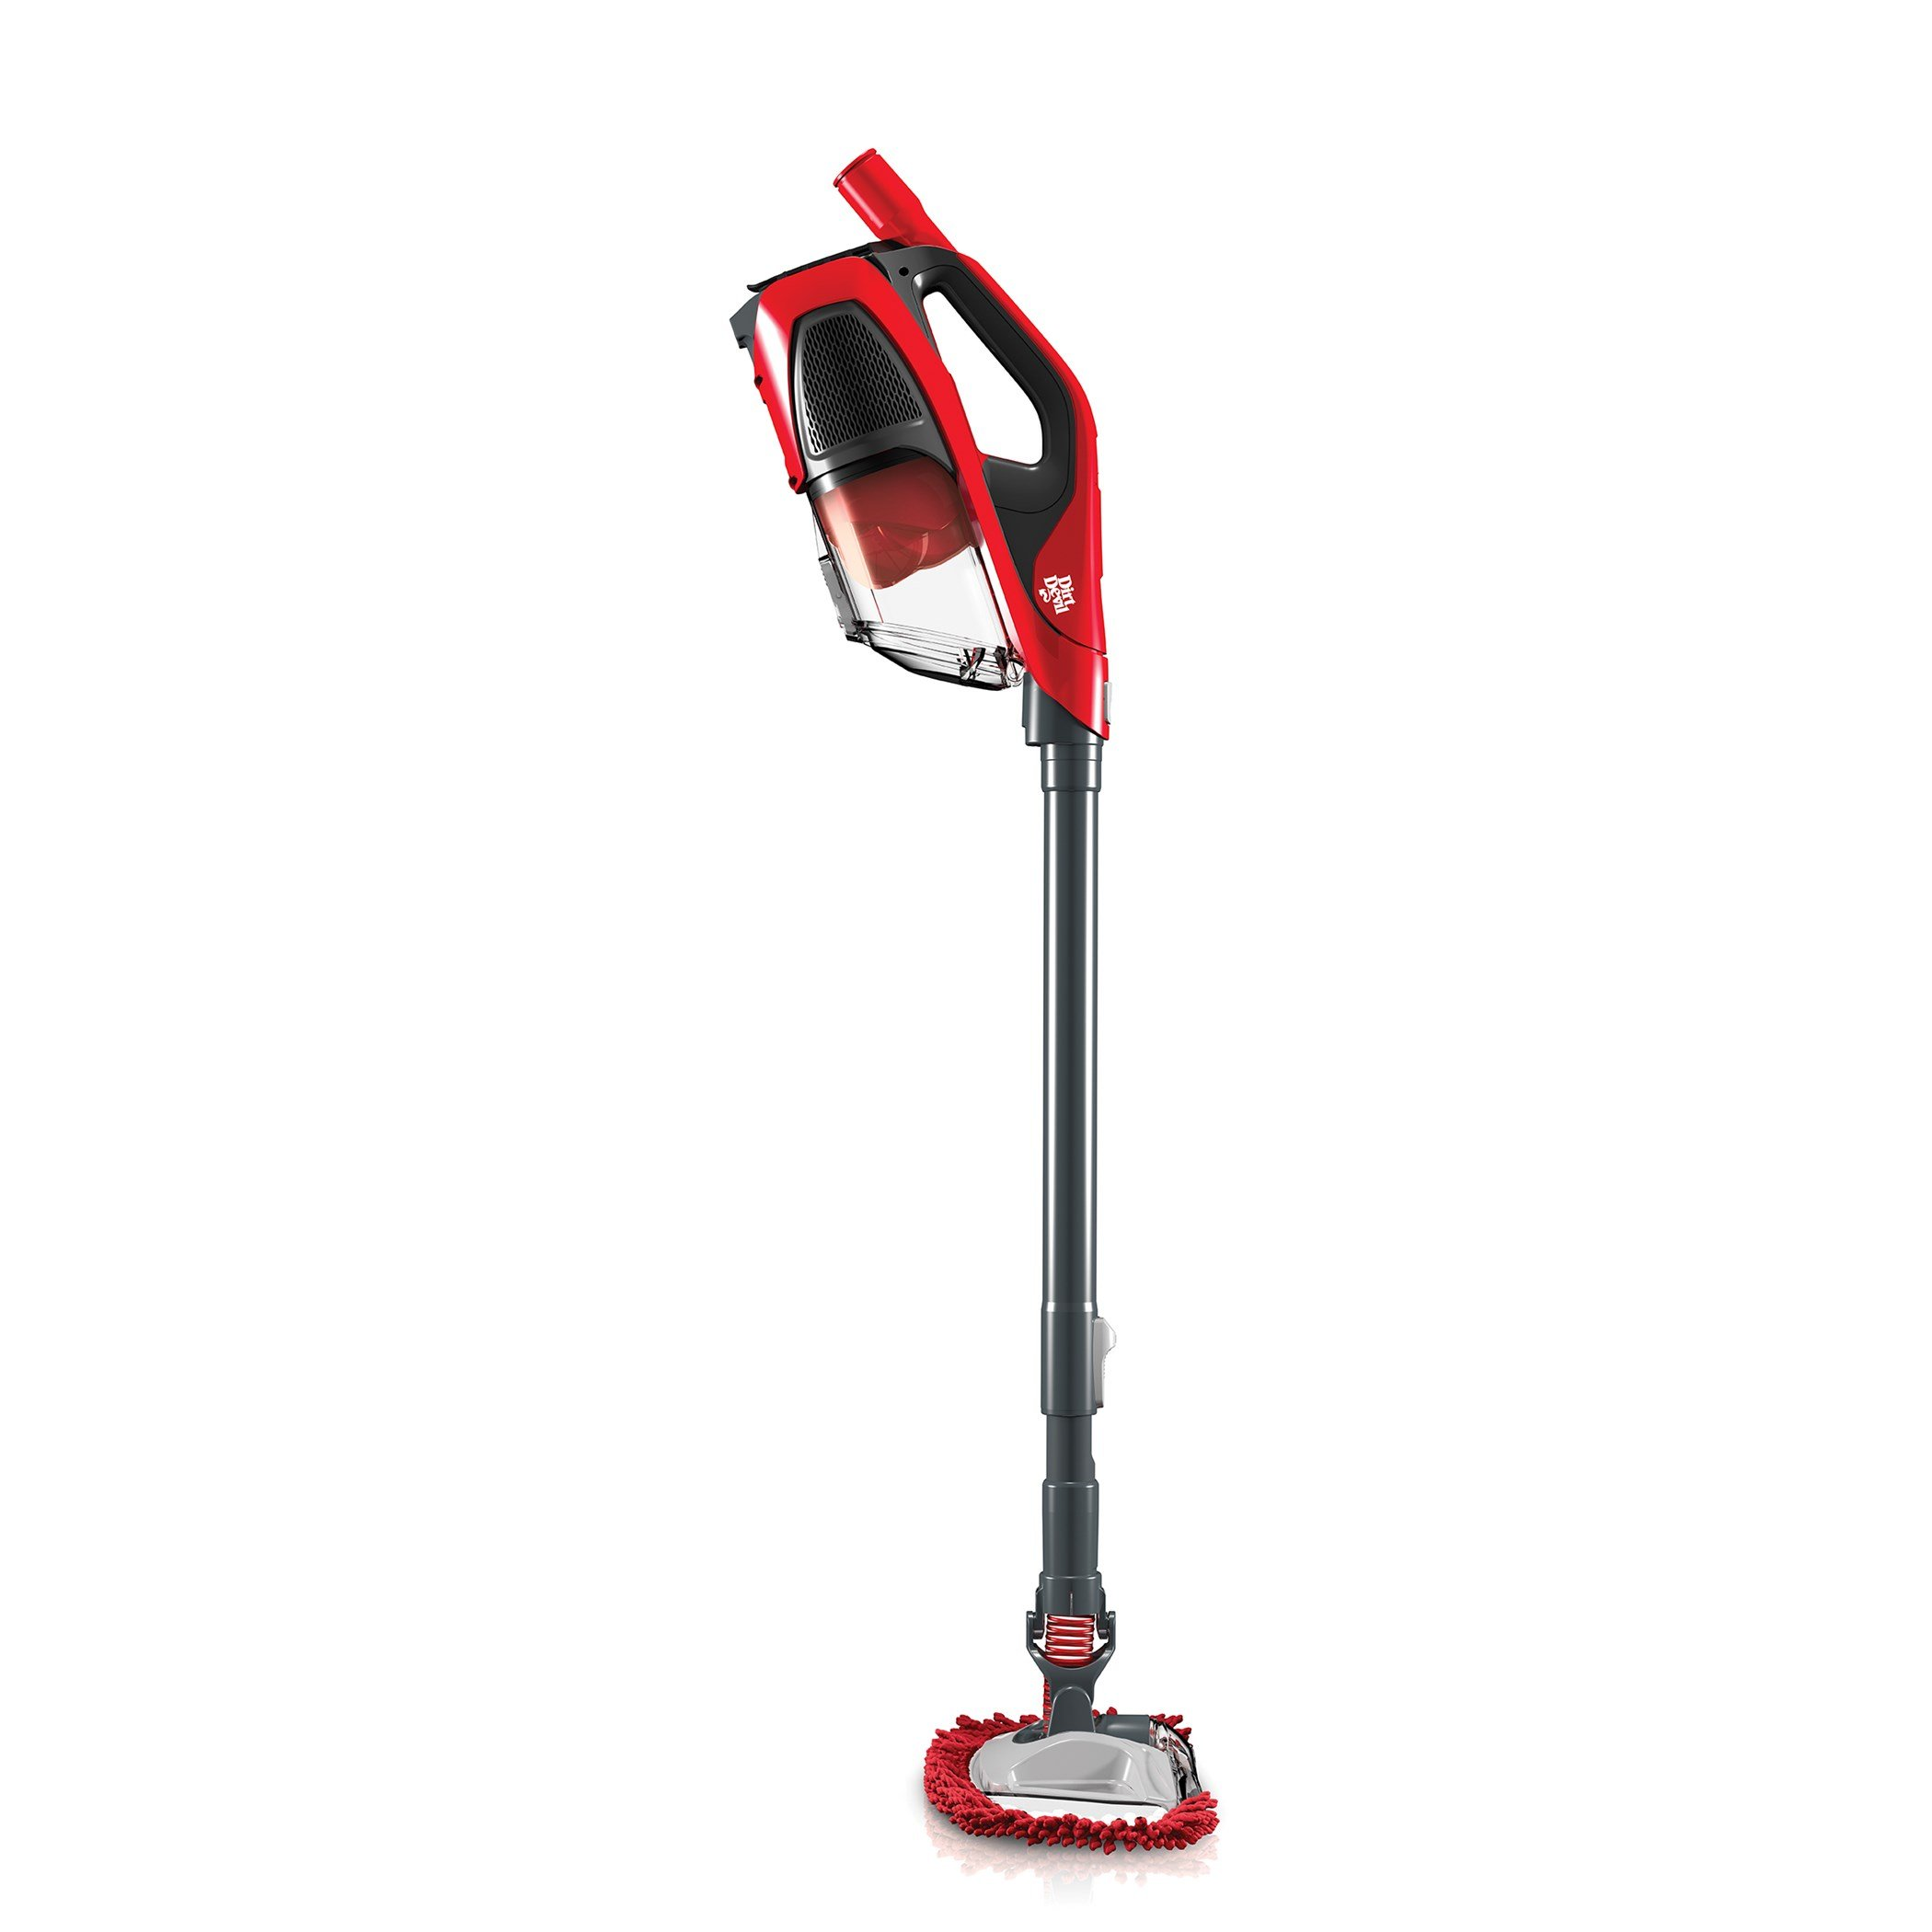 Dirt Devil Vacuum Cleaner 360 Reach Pro Corded Bagless Stick and Handheld Vacuum SD12515B by Dirt Devil (Image #2)